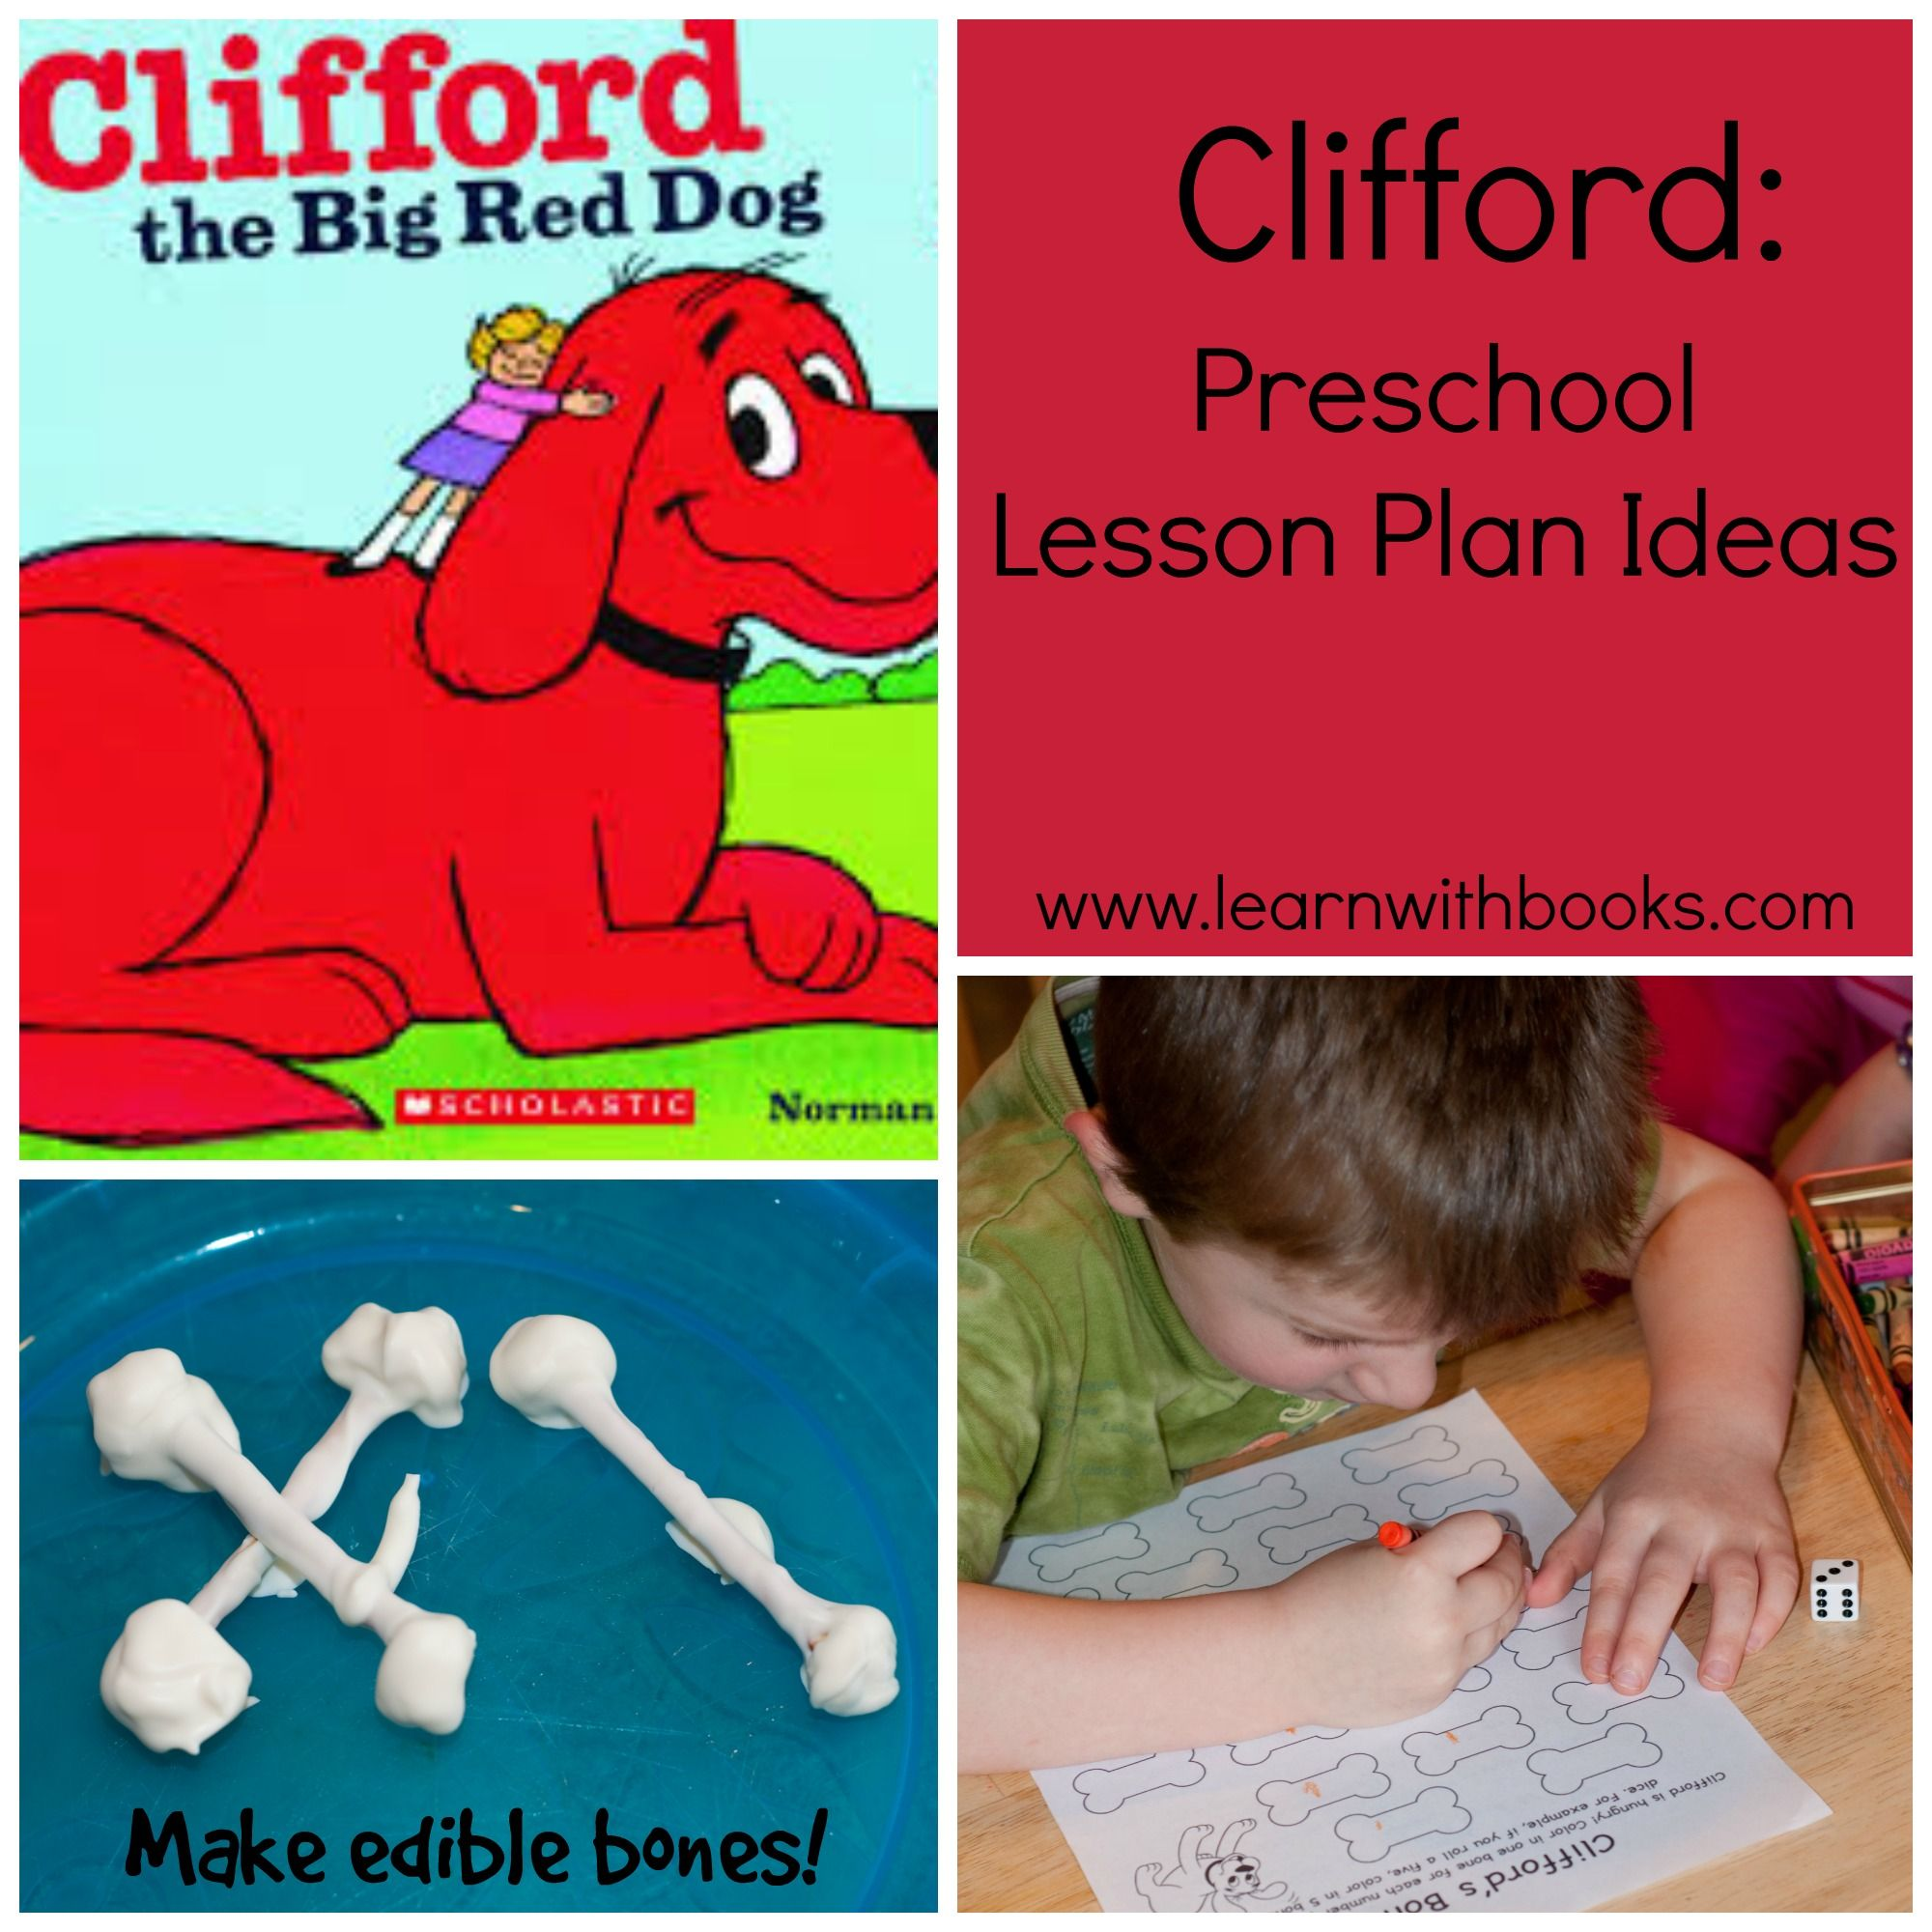 clifford the big red dog craft ideas with clifford preschool lesson plan ideas 8014